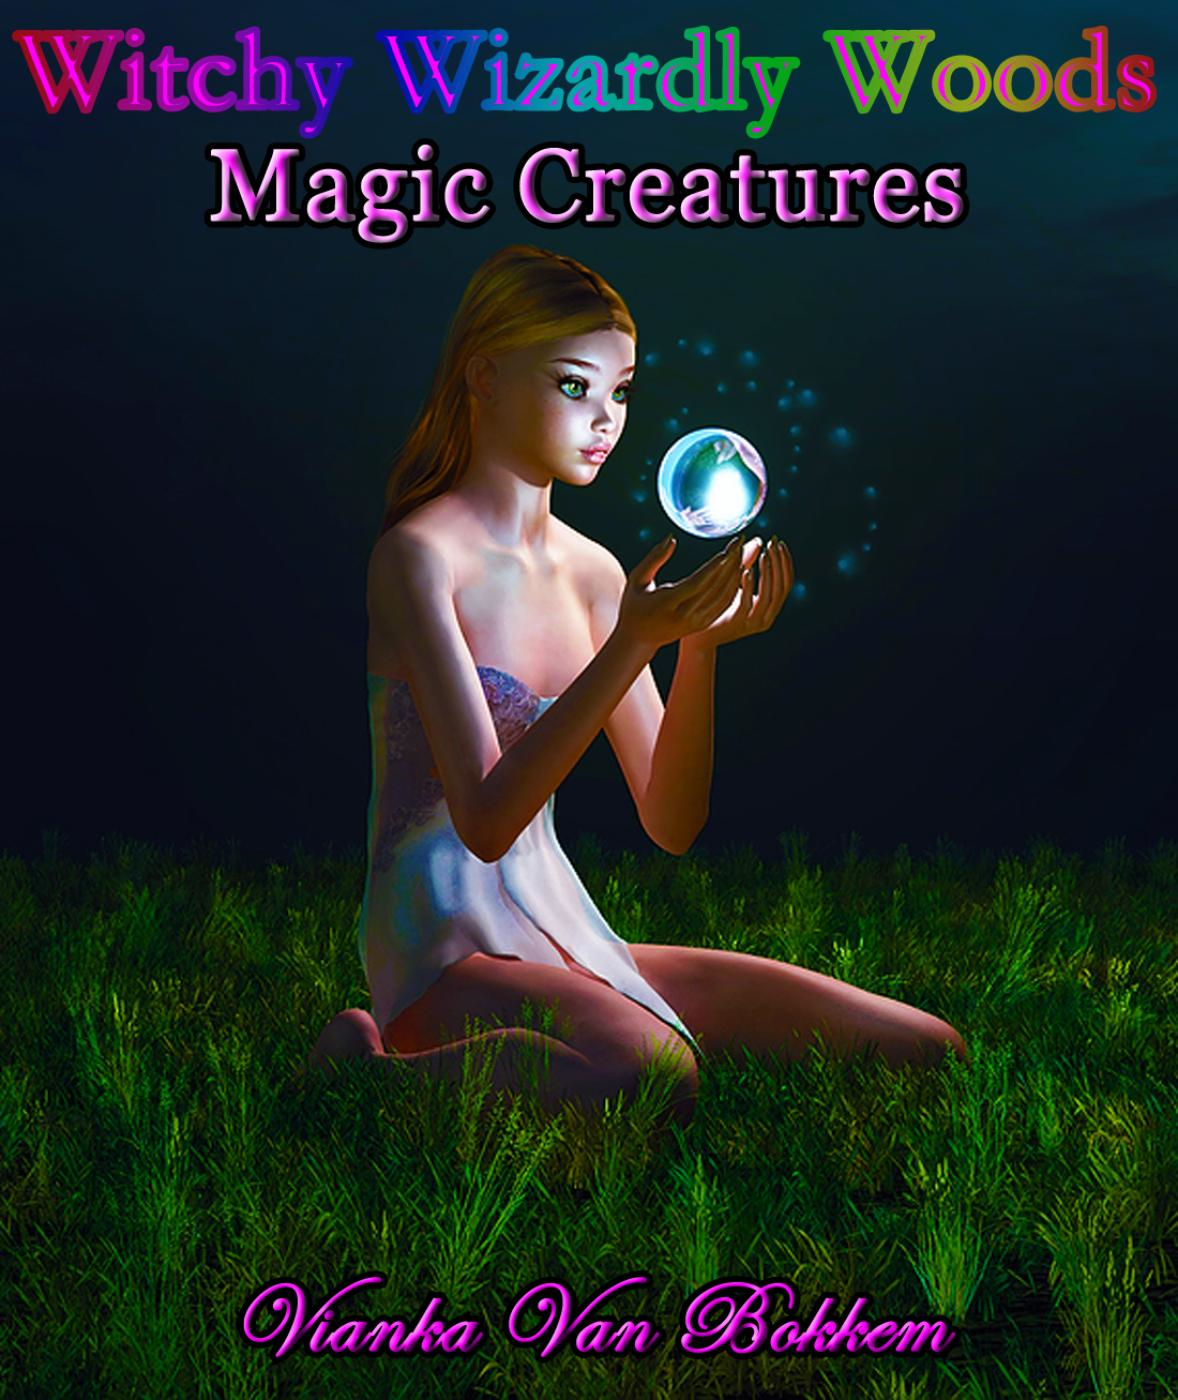 Witchy Wizardly Woods: Magic Creatures